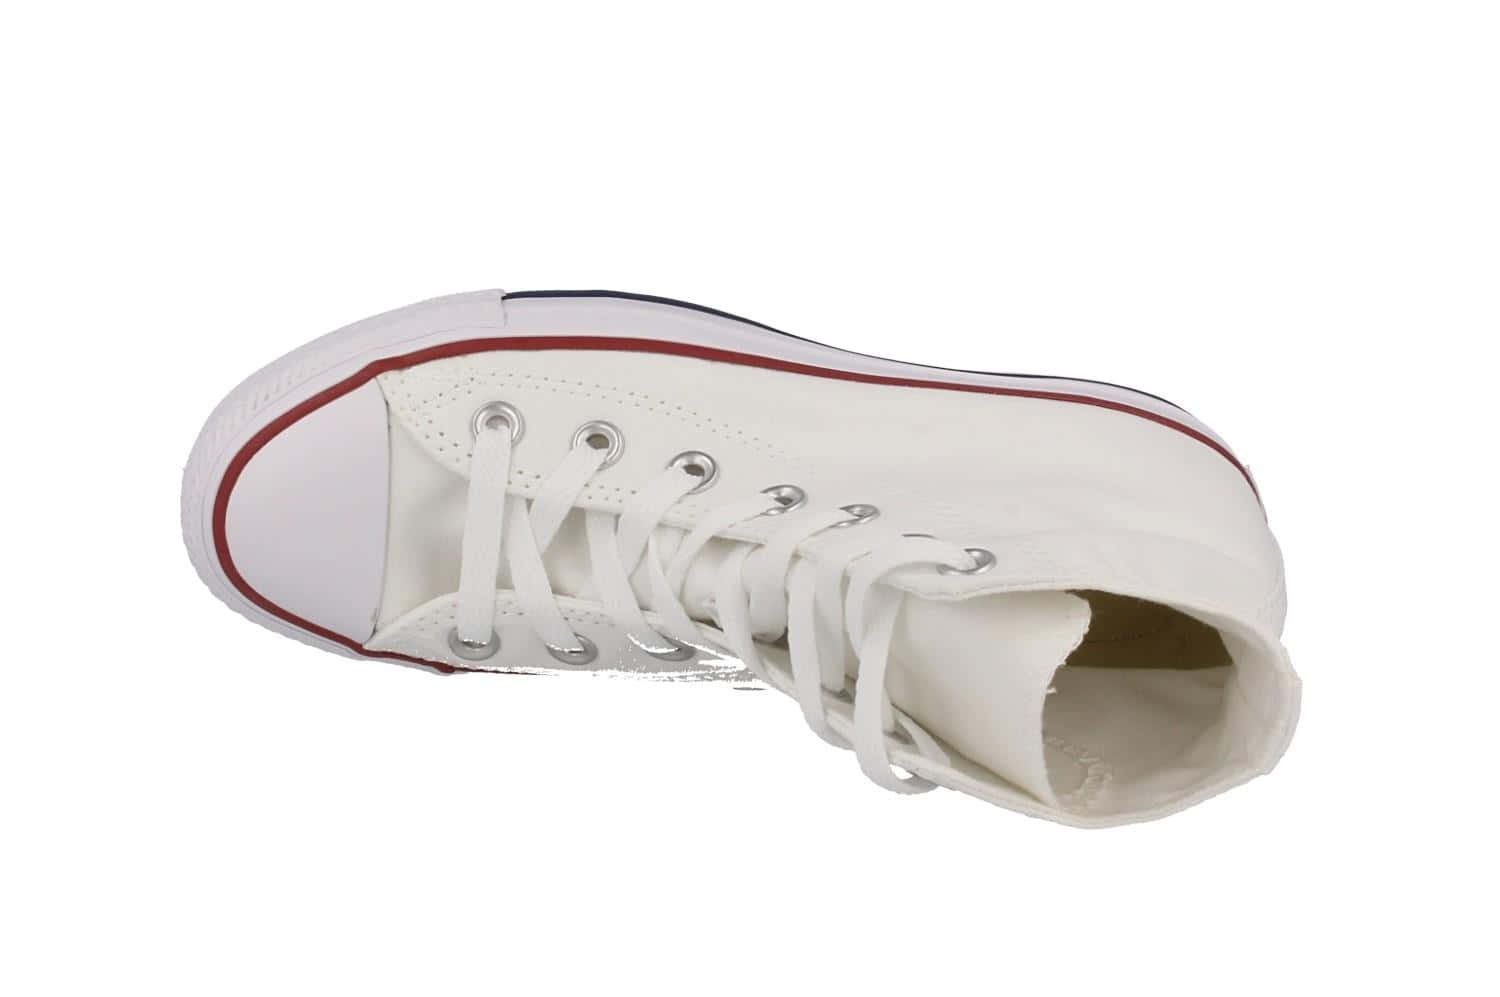 Converse Unisex Chuck Taylor All Star Hi Oxfords Optical White 6.5 D(M) US by Converse (Image #7)